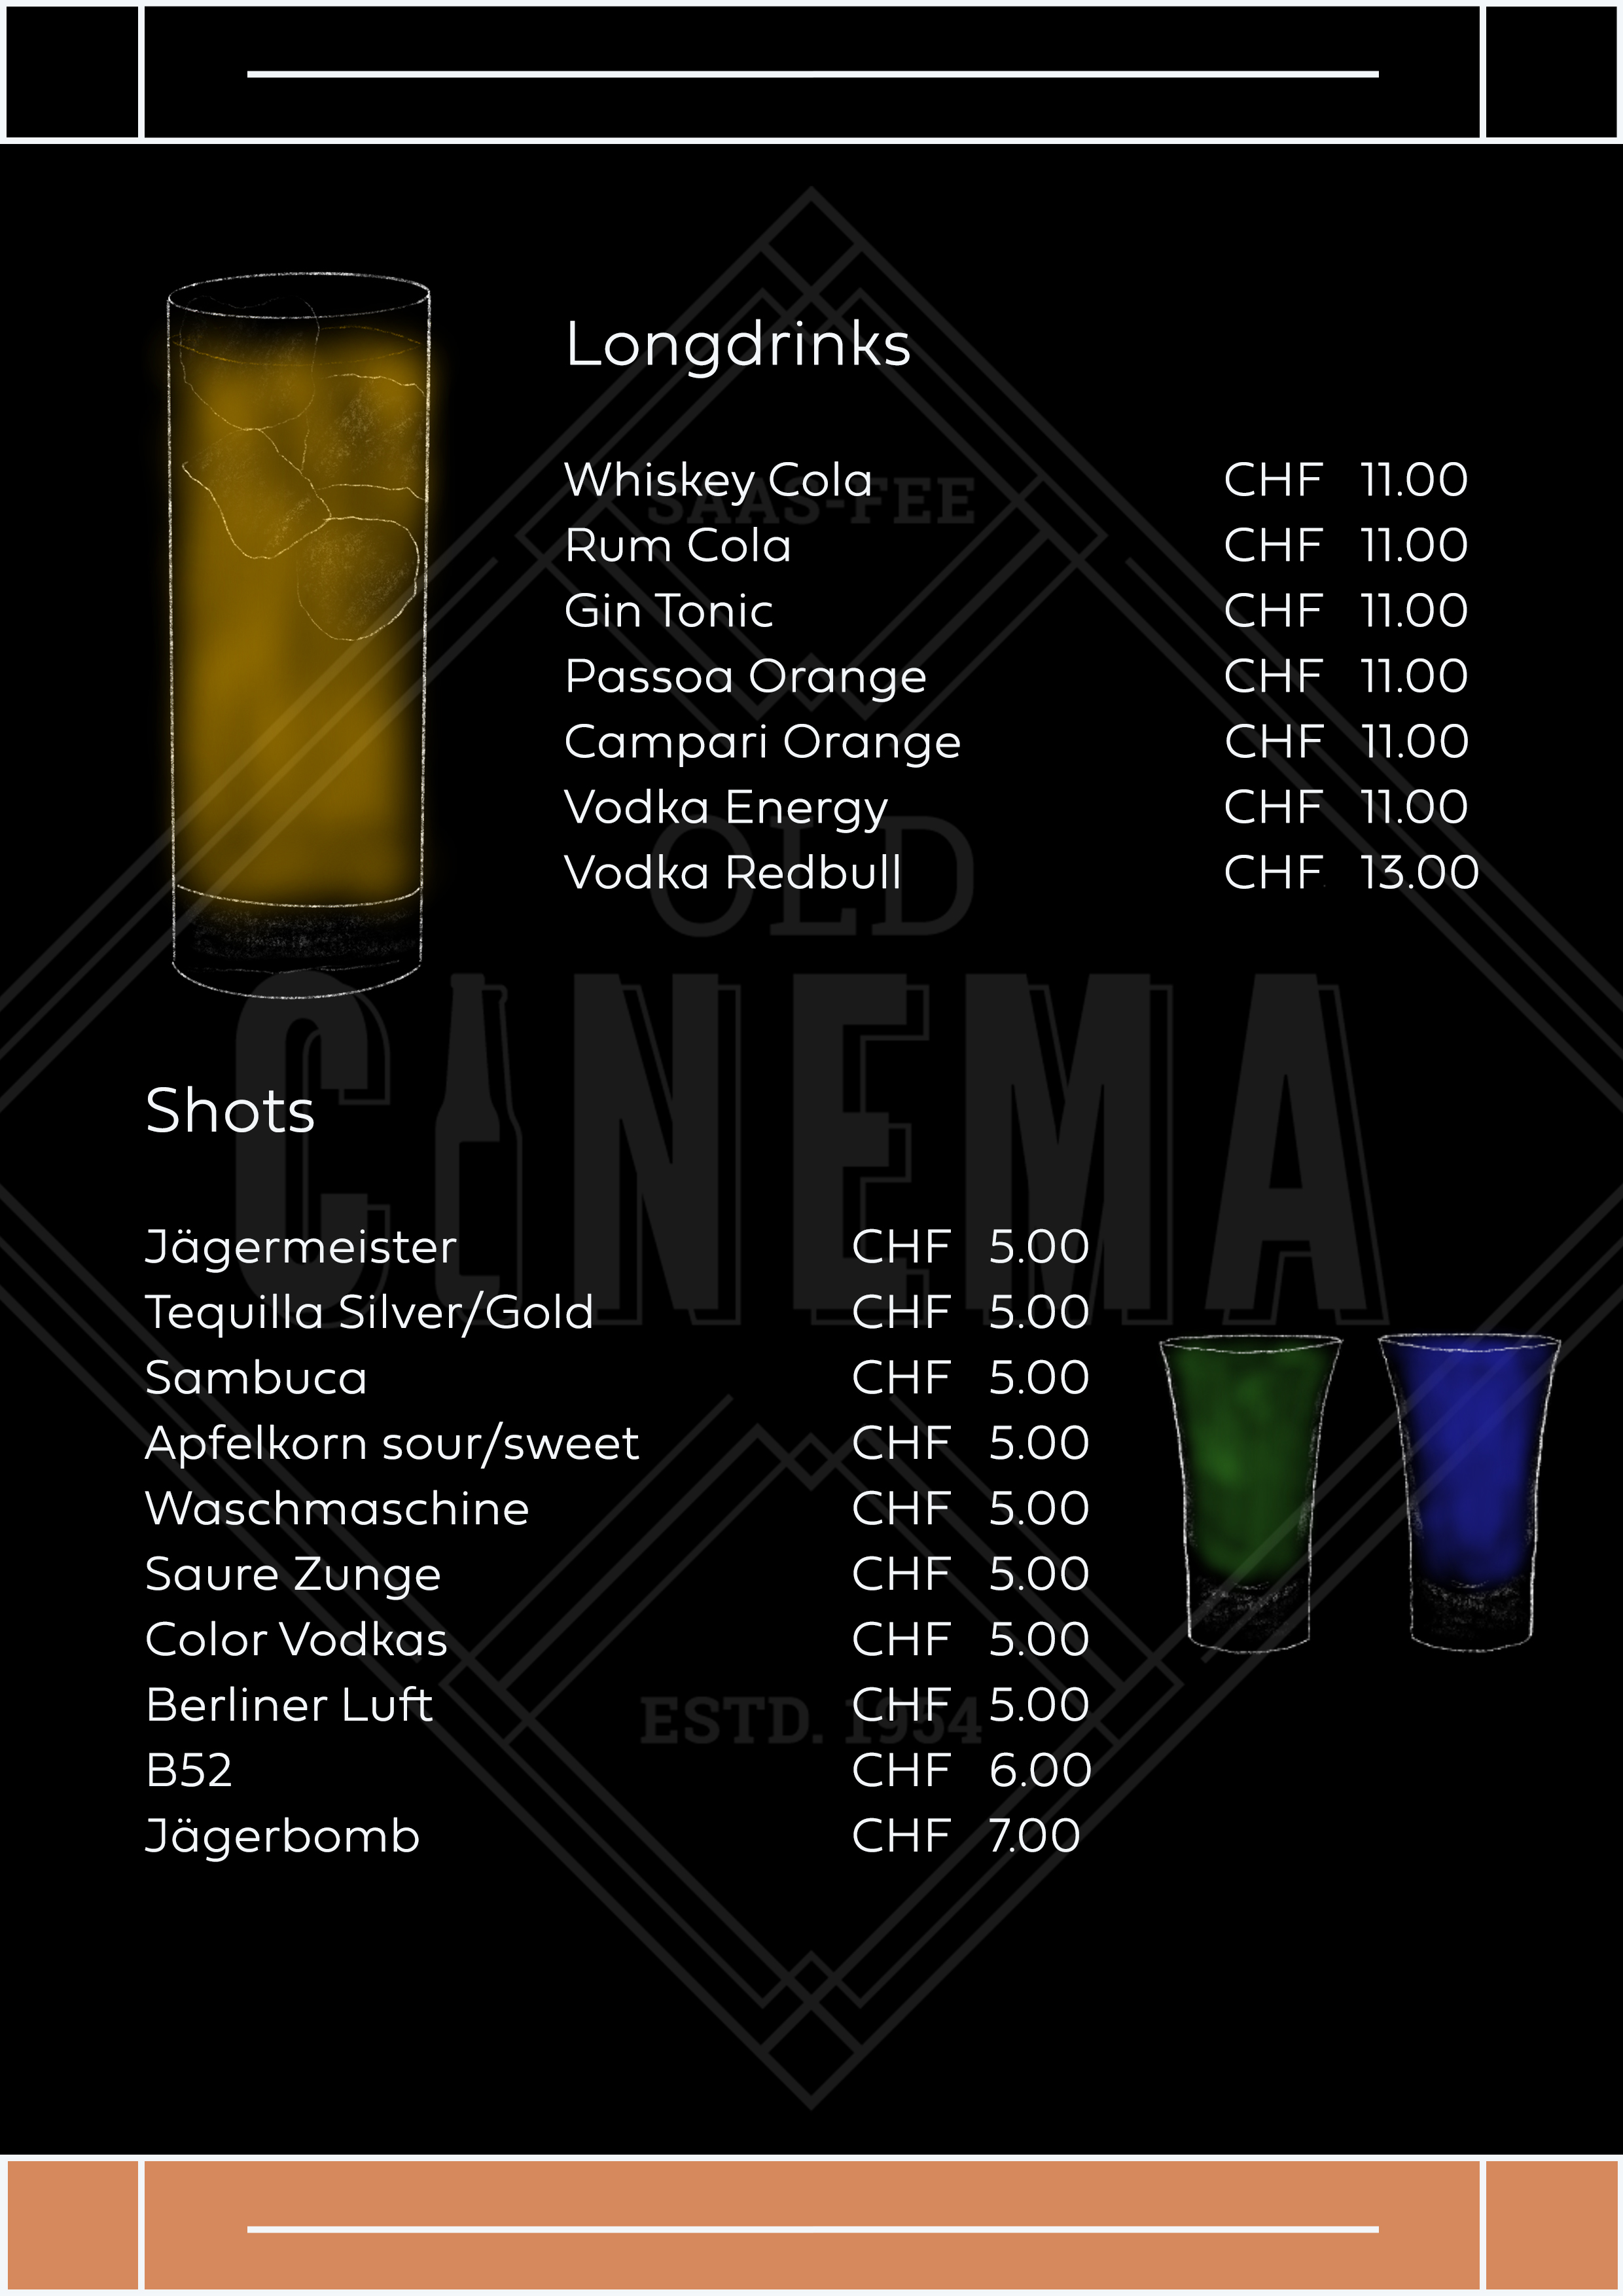 Longdrinks_Shots_Page.jpg